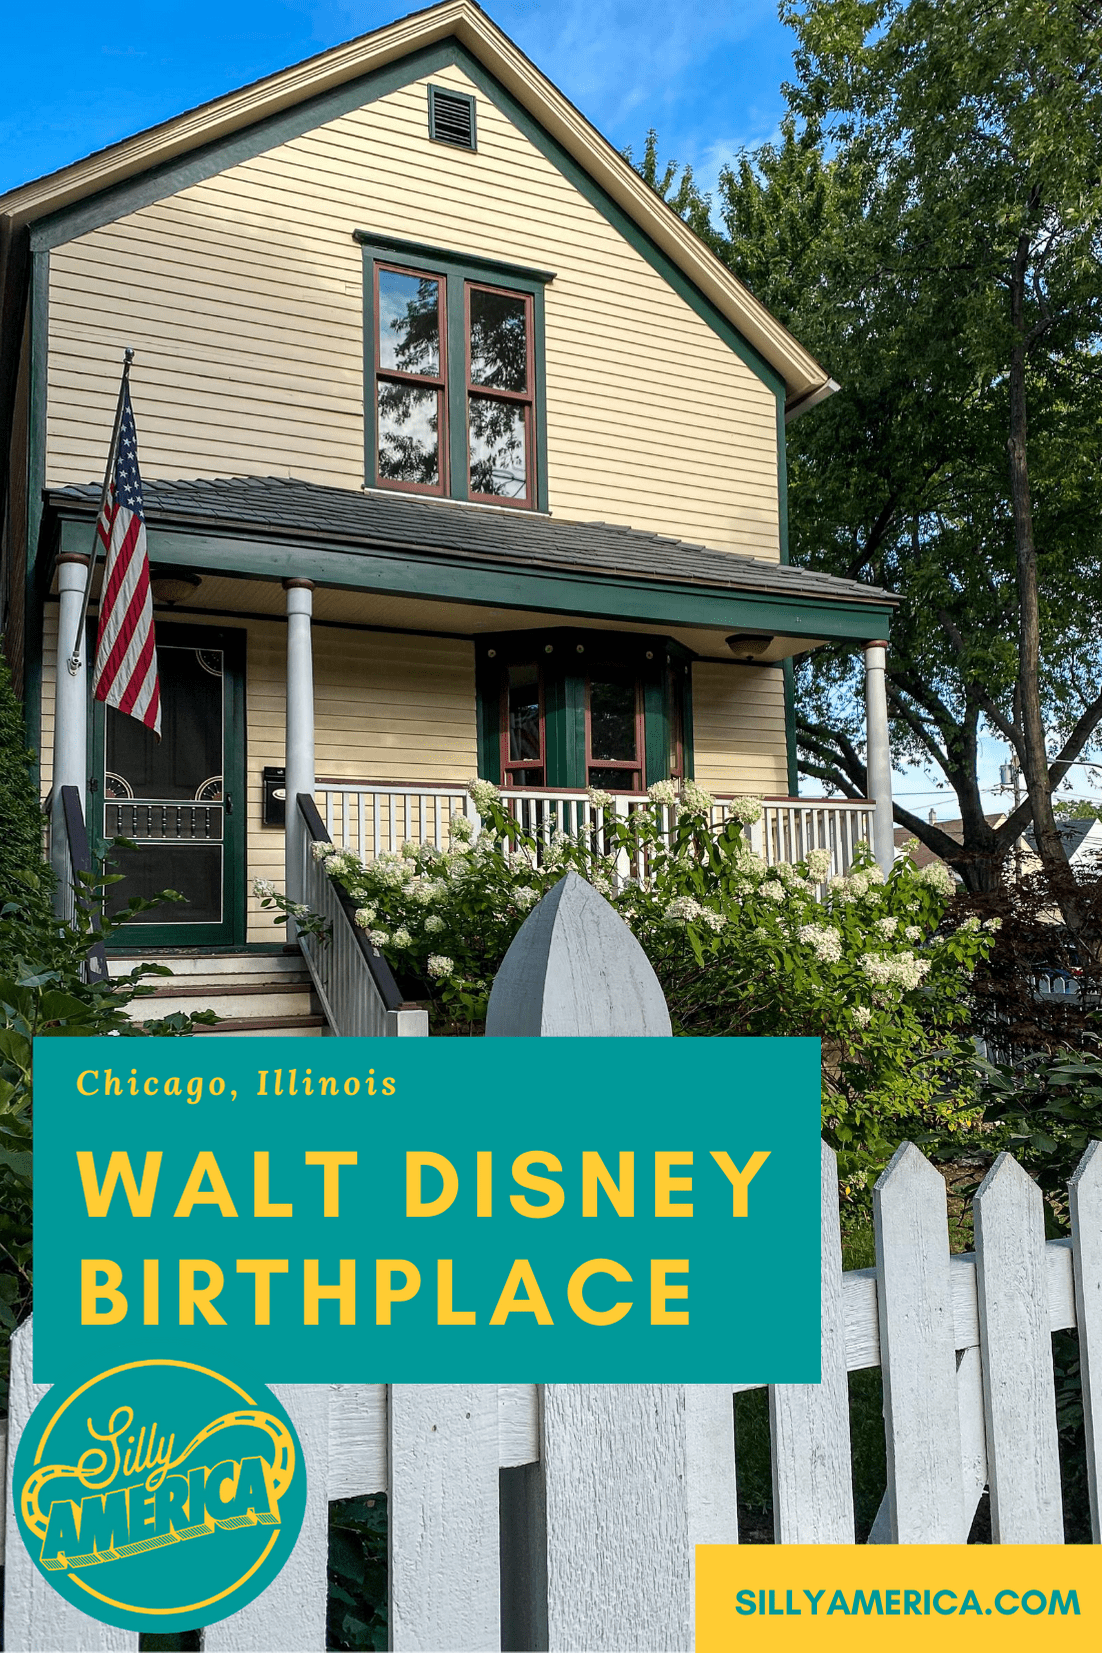 The Walt Disney Birthplace is in Chicago, Illinois. Walt Disney, the animator, voice actor, writer, and film producer who was an animation superstar and created the Disney empire. His father, Elias Disney, built this house and, on December 5, 1901, Walter Elias Disney was born there. He spent his early childhood living in that house before the family moved to a farm in Marceline, Missouri, when he was four years old. #Disney #WaltDisney #ChicagoRoadsideAttraction #IllinoisRoadsideAttractions